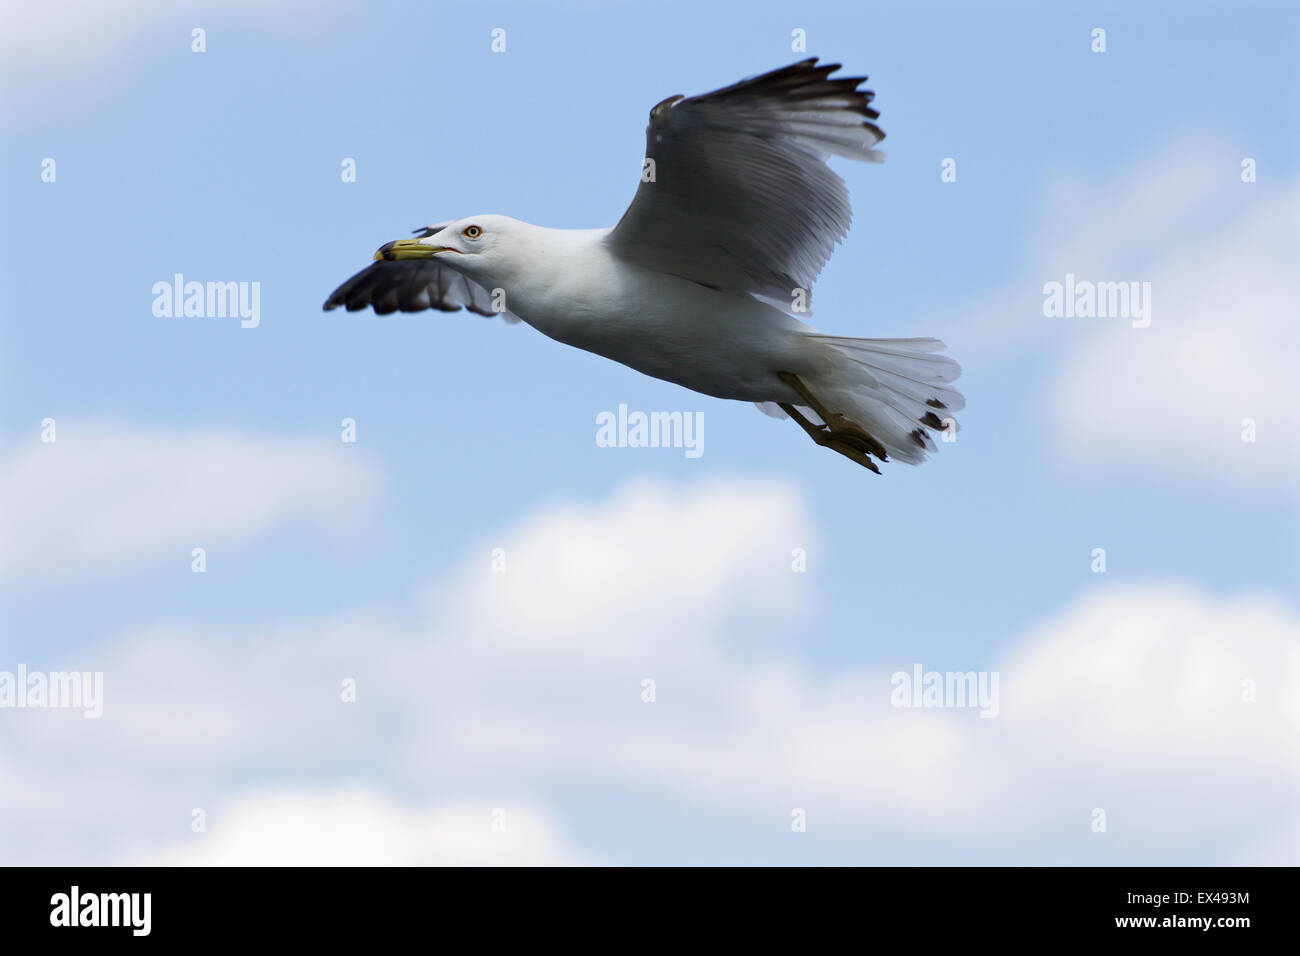 Beautiful flight of the ring-billed gull with the blue skyes on the background - Stock Image